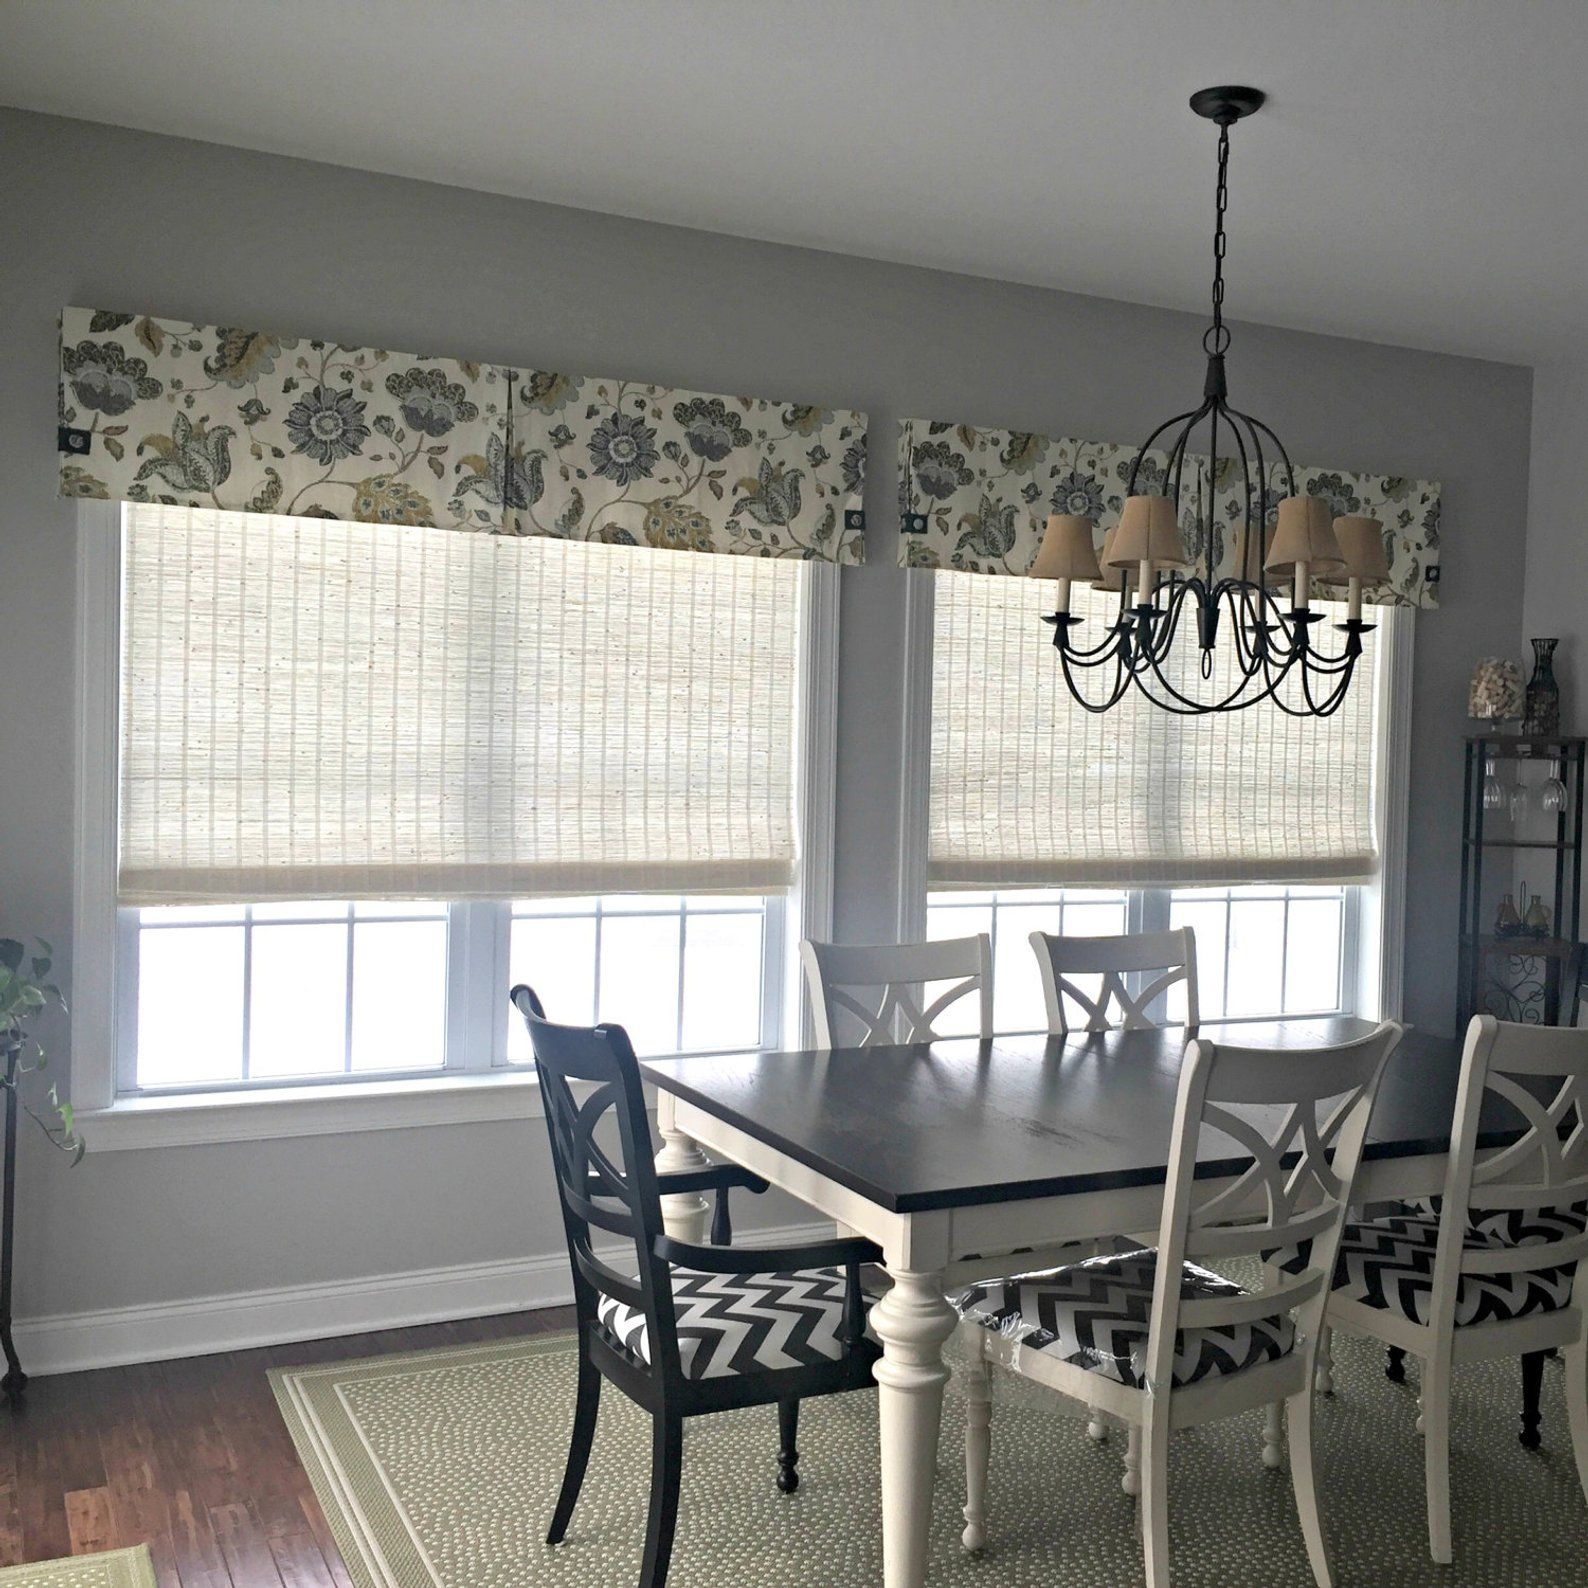 Custom Made To Order Box Pleat Valance Using Your Fabric Etsy Box Pleat Valance Window Treatments Living Room Valance